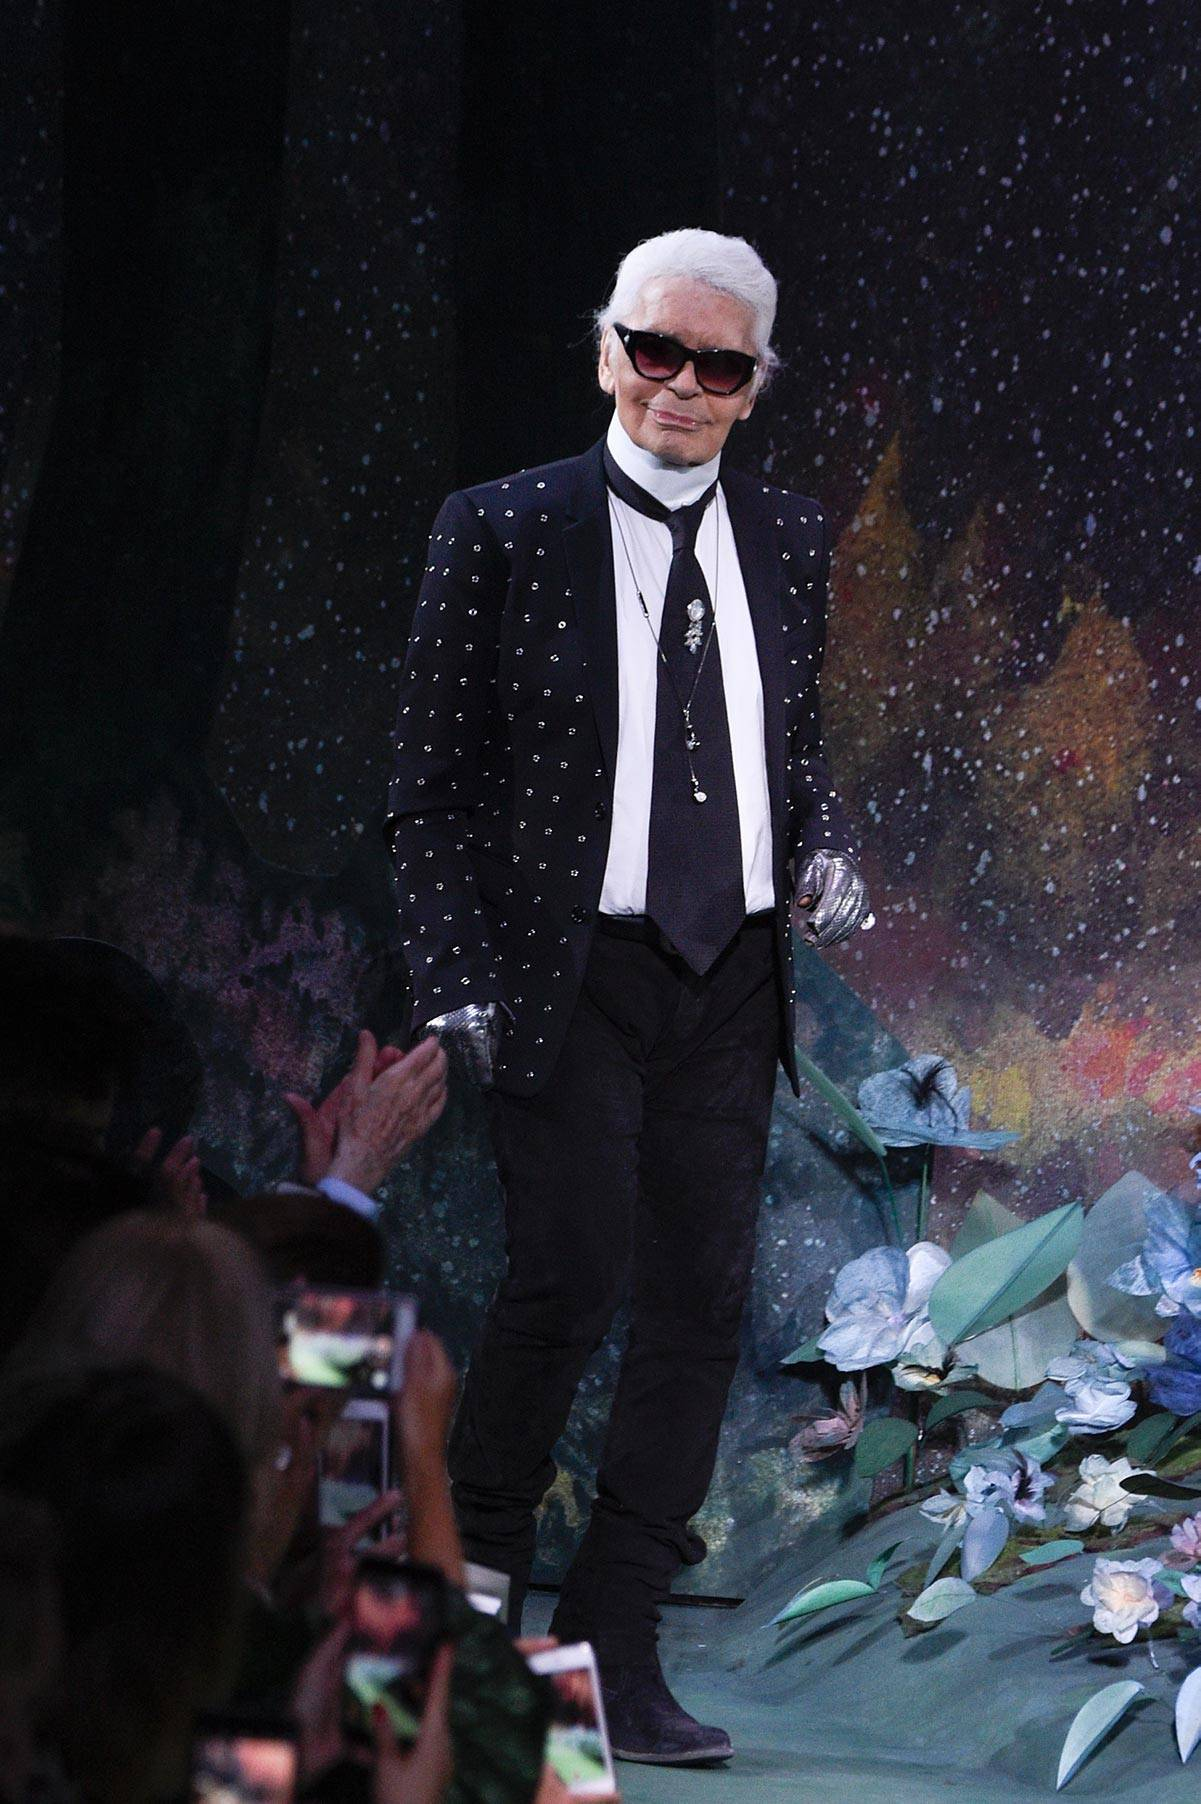 Karl Lagerfeld, Haute Couture Paris Fashion 2017 (Fot. Peter White/Getty Images)